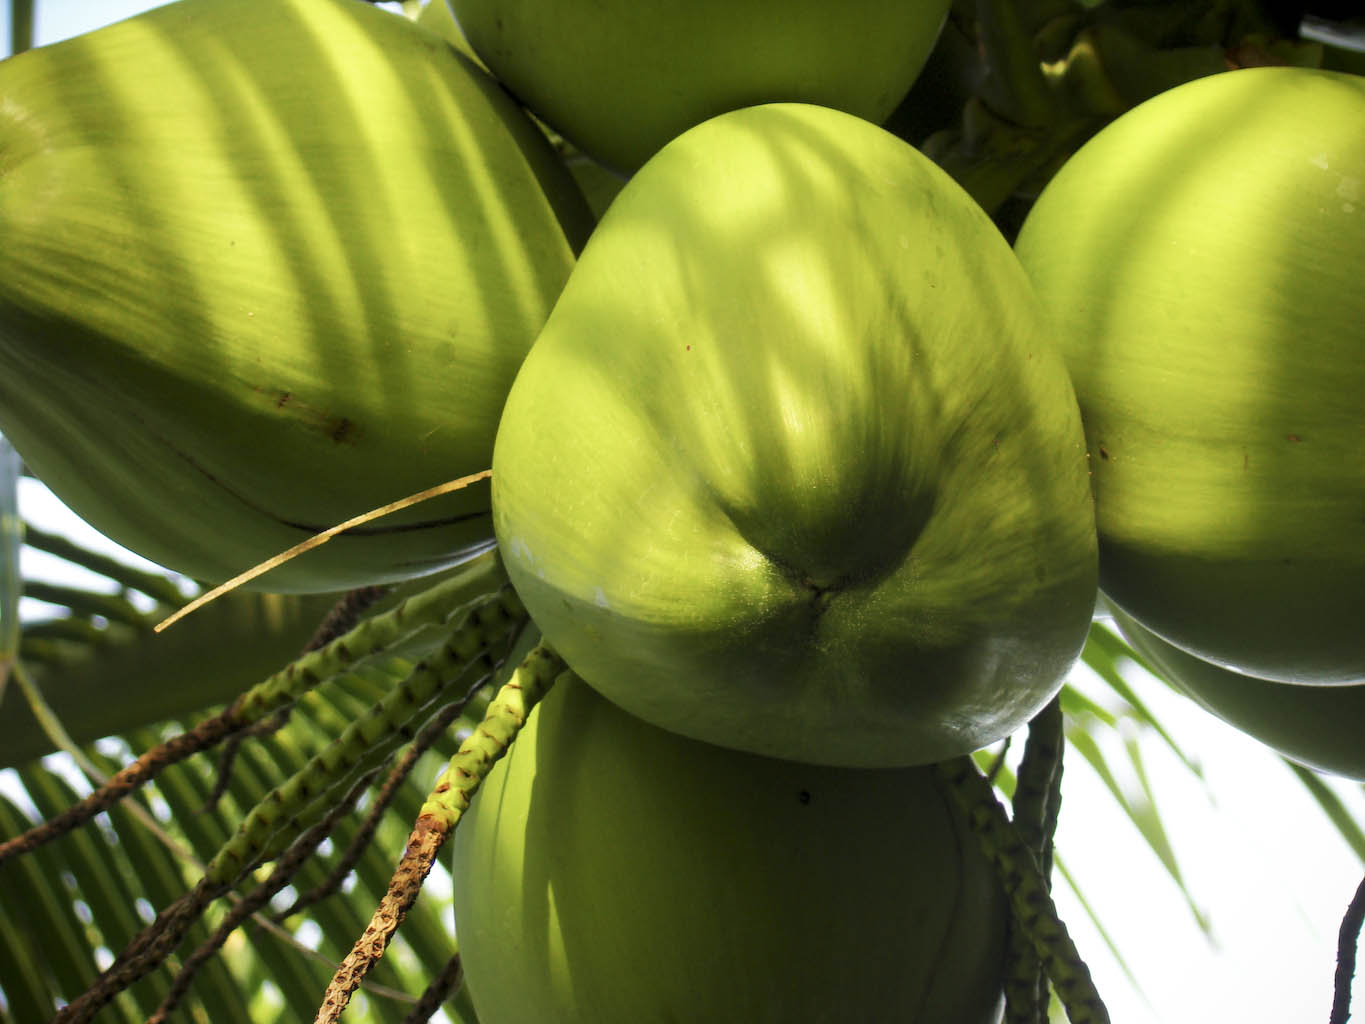 http://www.celkau.in/Crops/Plantation%20Crops/Coconut/images/coconut.jpg